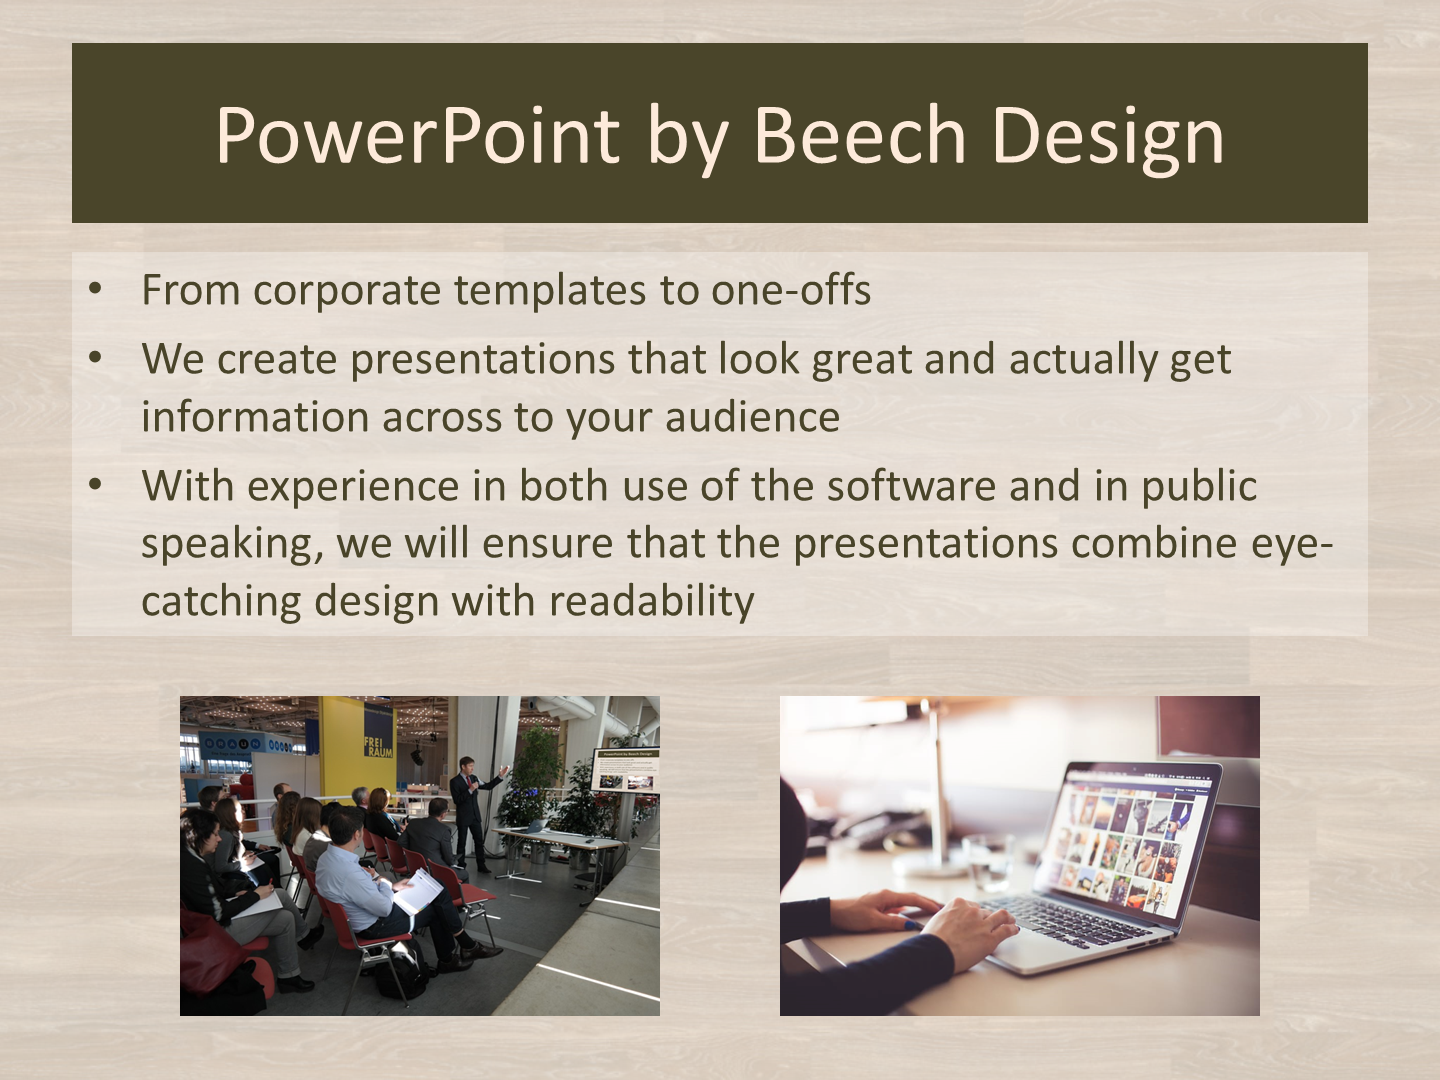 www.beechdesign.co.uk/images/office/powerpoint.ppsx